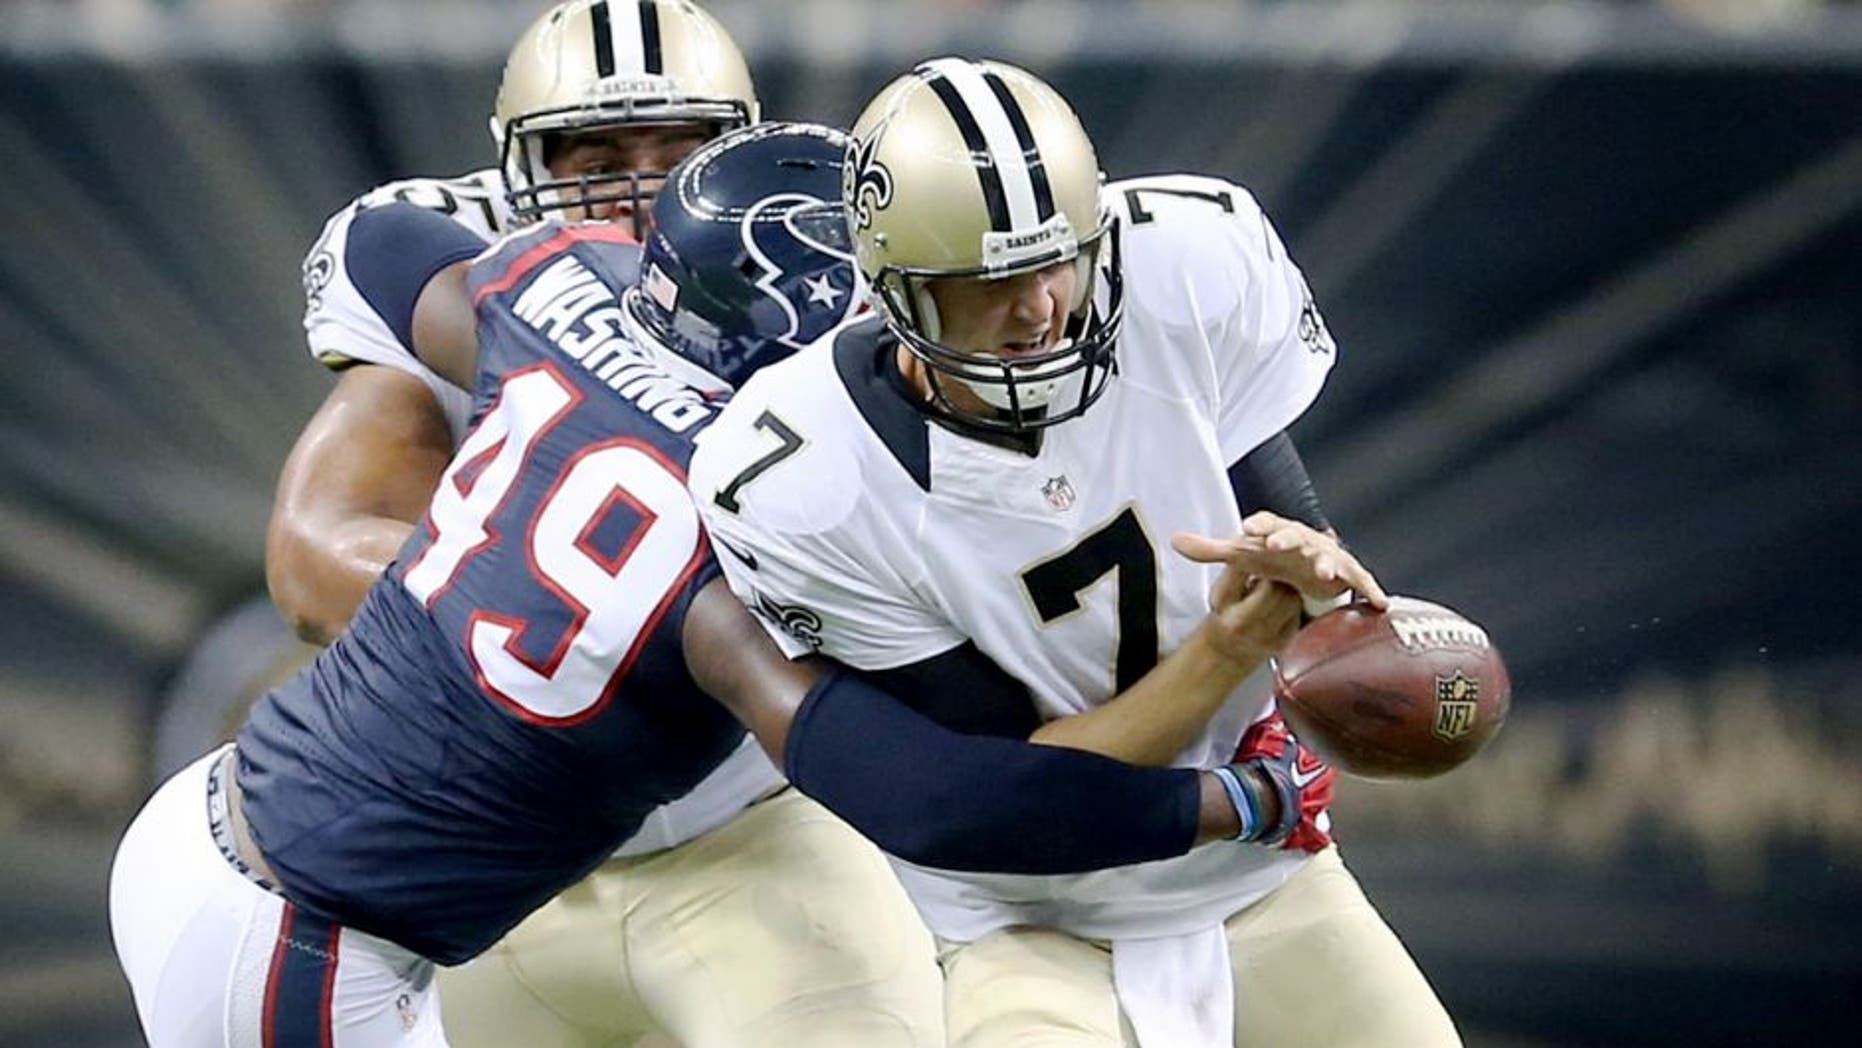 Aug 30, 2015; New Orleans, LA, USA; Houston Texans outside linebacker Tony Washington (49) knocks the football away from New Orleans Saints quarterback Luke McCown (7) in the second quarter of their game at the Mercedes-Benz Superdome. Mandatory Credit: Chuck Cook-USA TODAY Sports